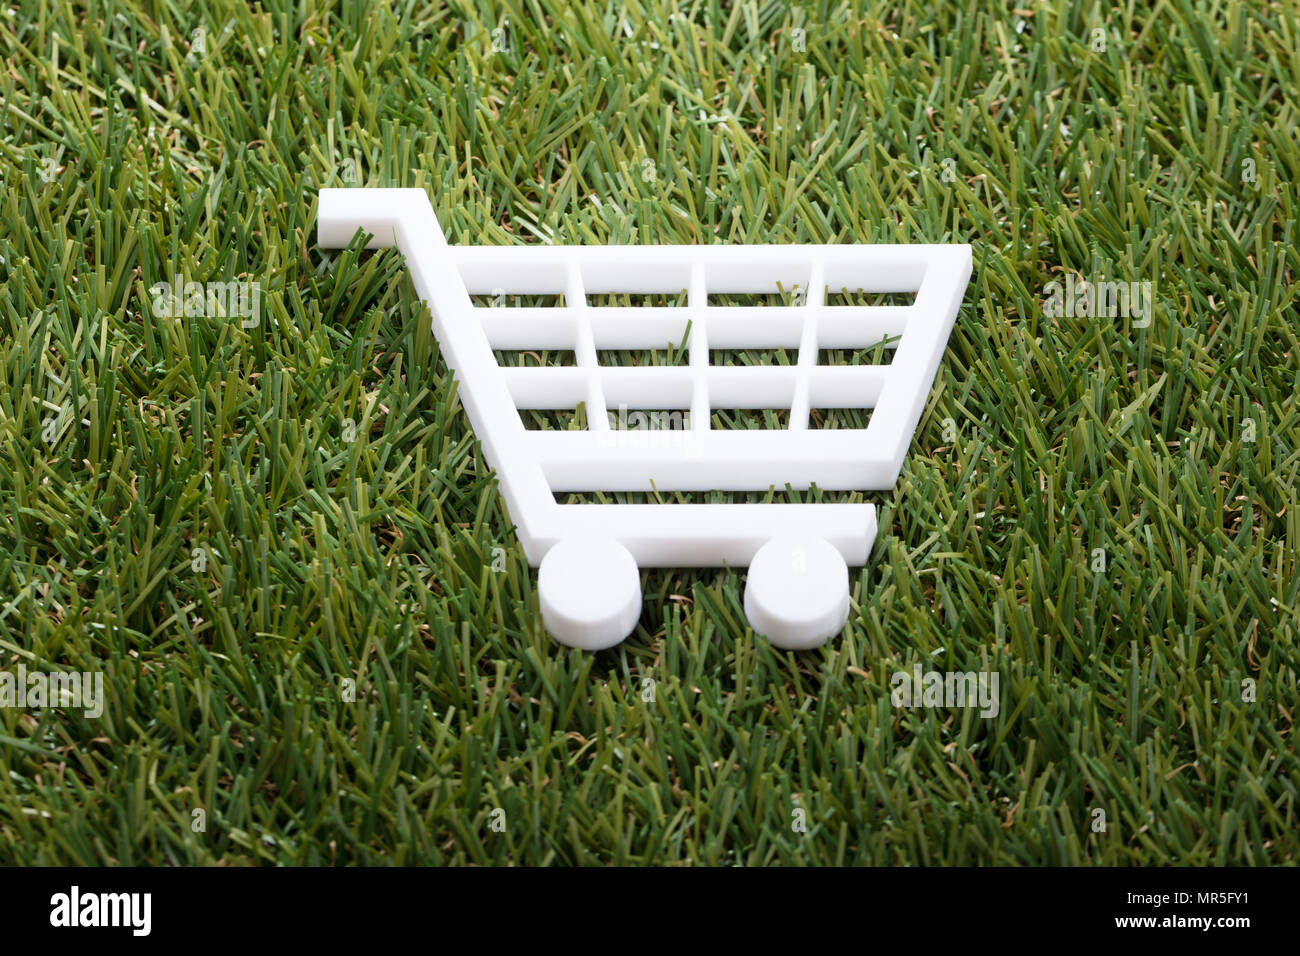 Elevated View Of White Shopping Cart On Green Grass Stock Photo